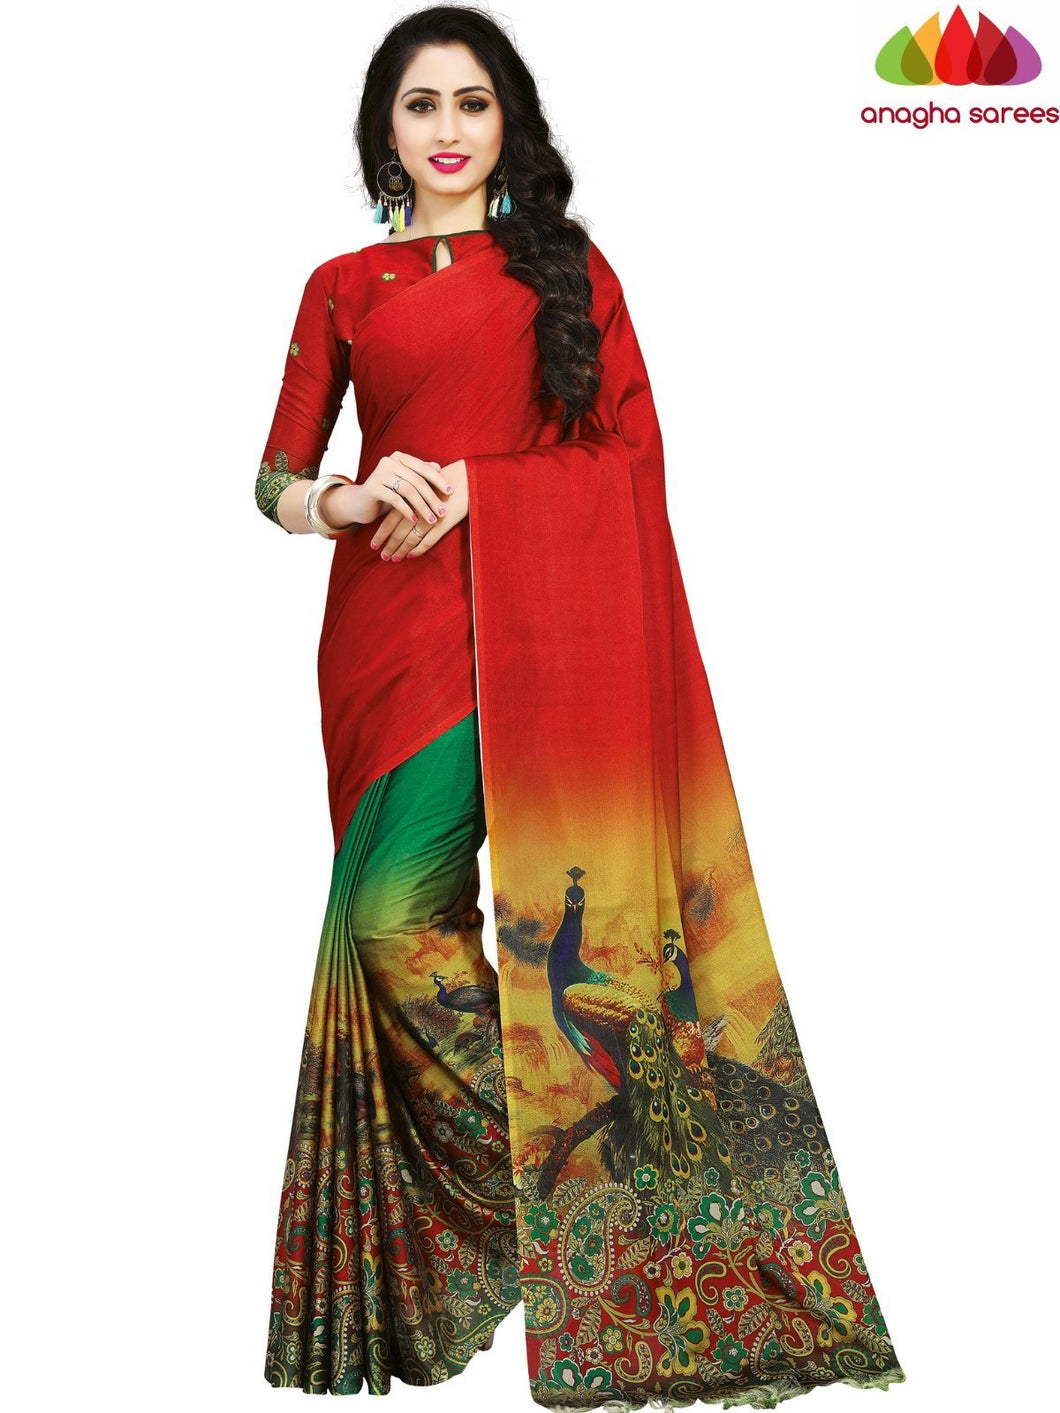 Anagha Sarees Cotton-silk Length=6.3metres, width=45 inches / Red/Green Designer Peacock Print Cotton-Silk Saree - Red/Green : ANA_K54